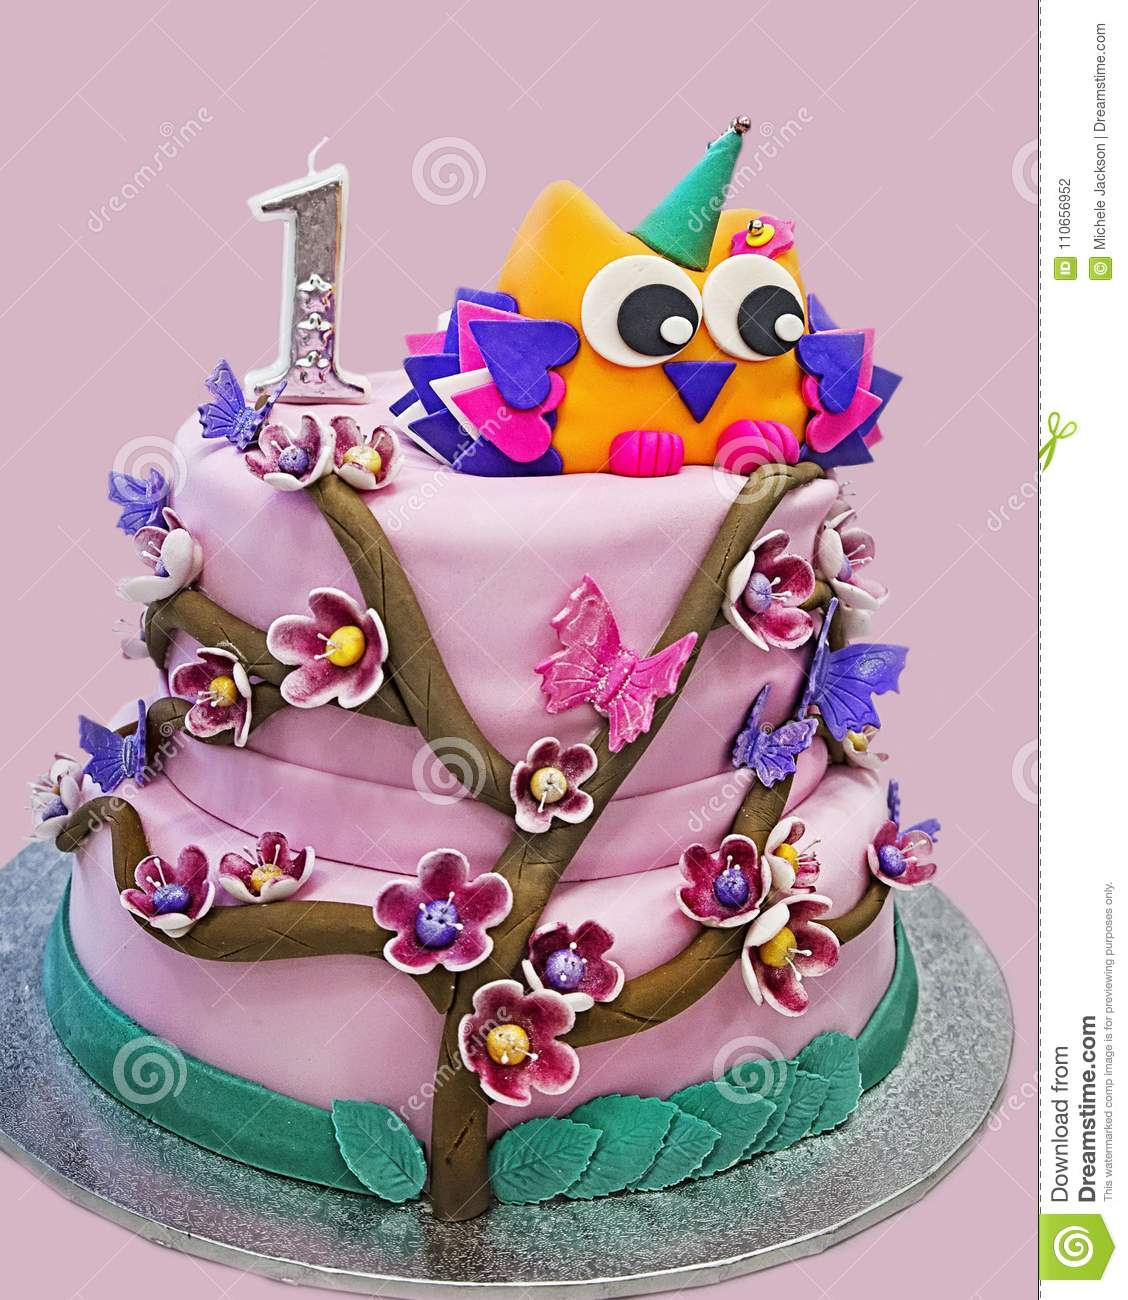 An Elaborate Pink Birthday Cake For A One Year Old Girl Featuring Flowers Butterflies And Owl On Top Wearing Party Hat